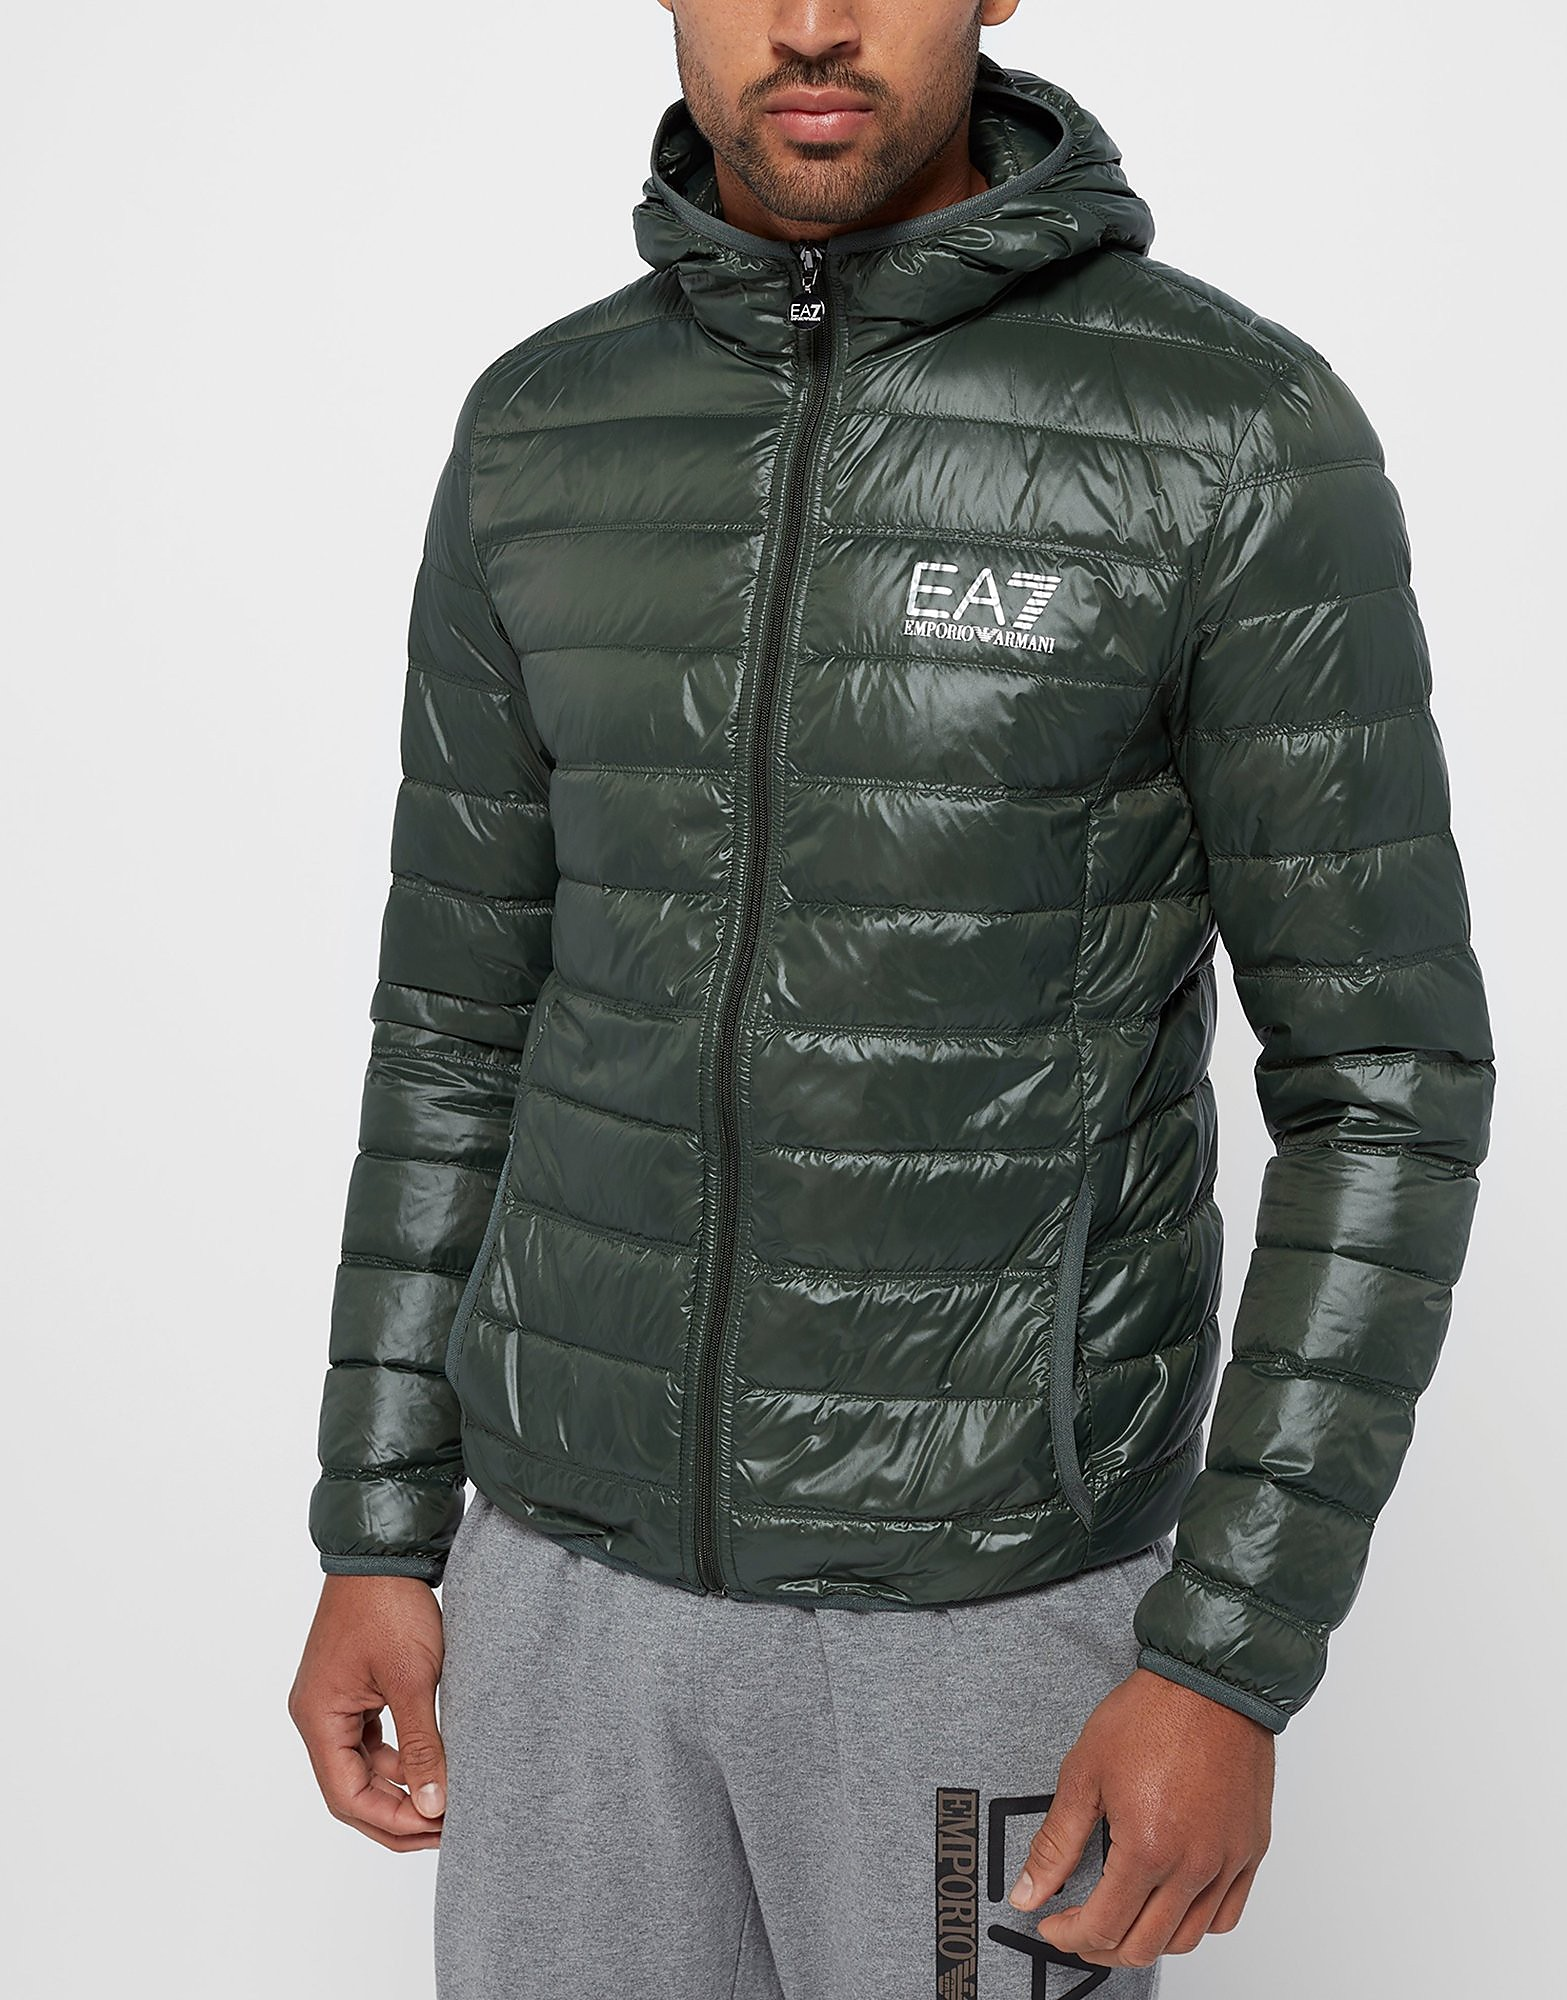 Emporio Armani EA7 Bubble Padded Jacket